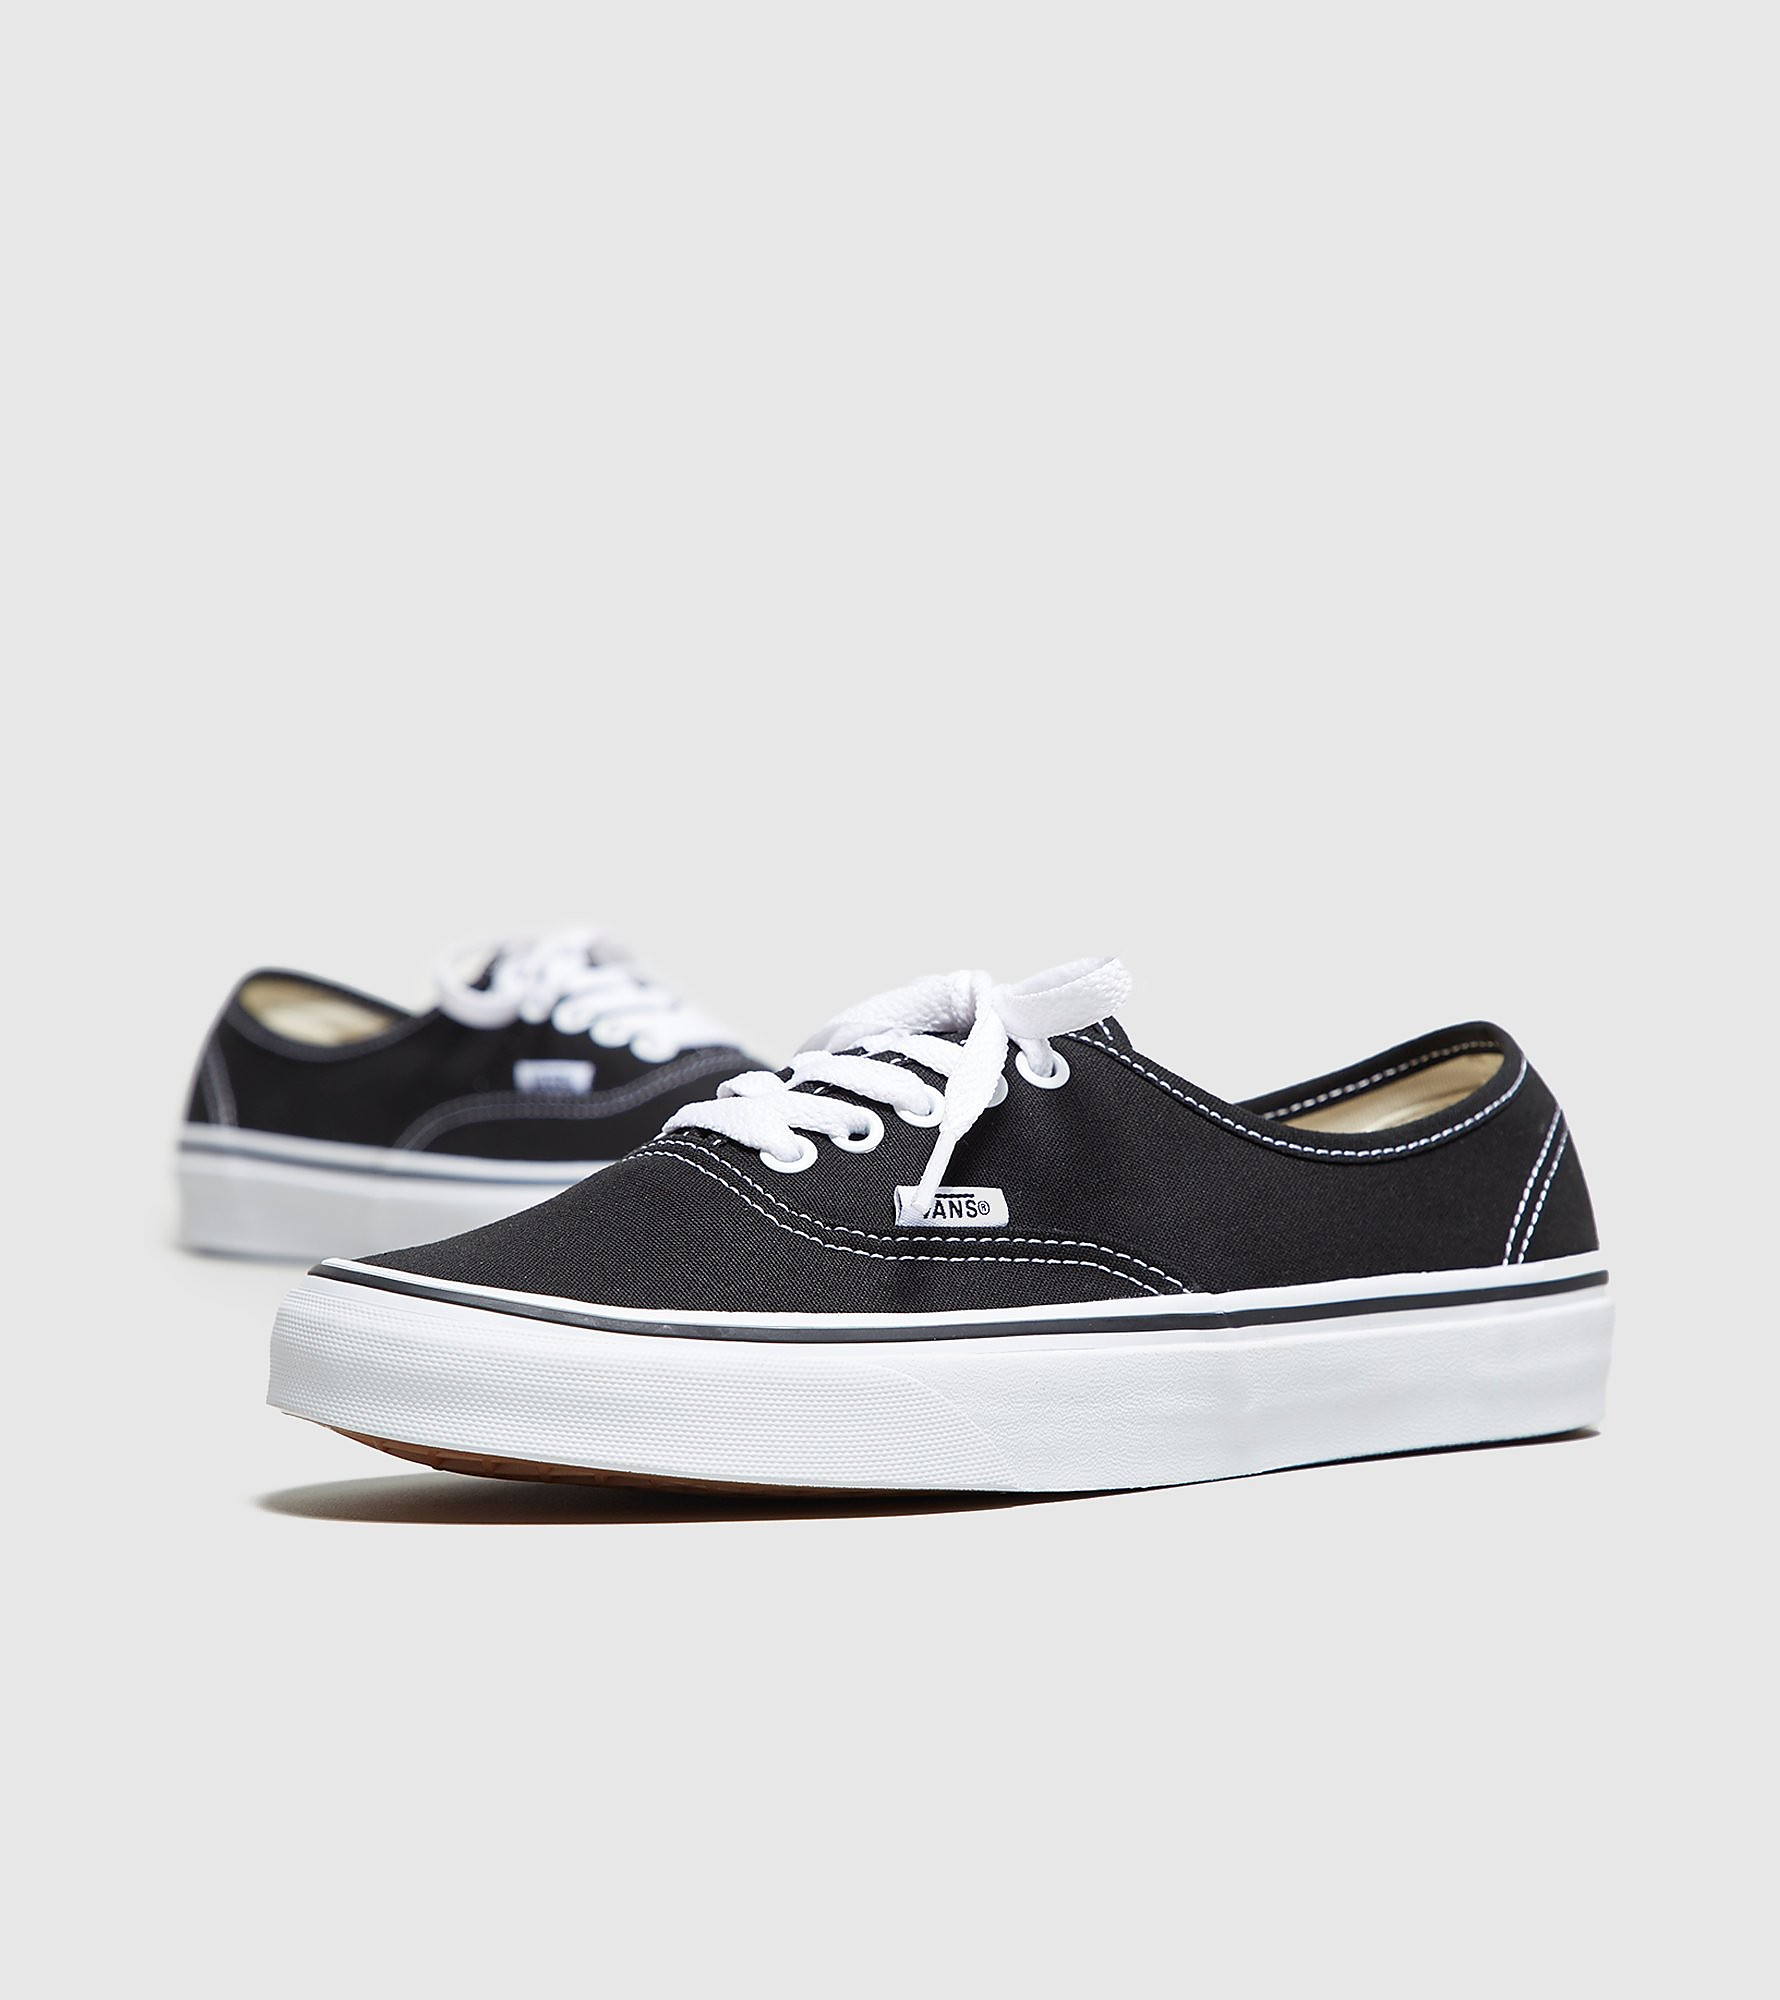 Vans Authentic Women's